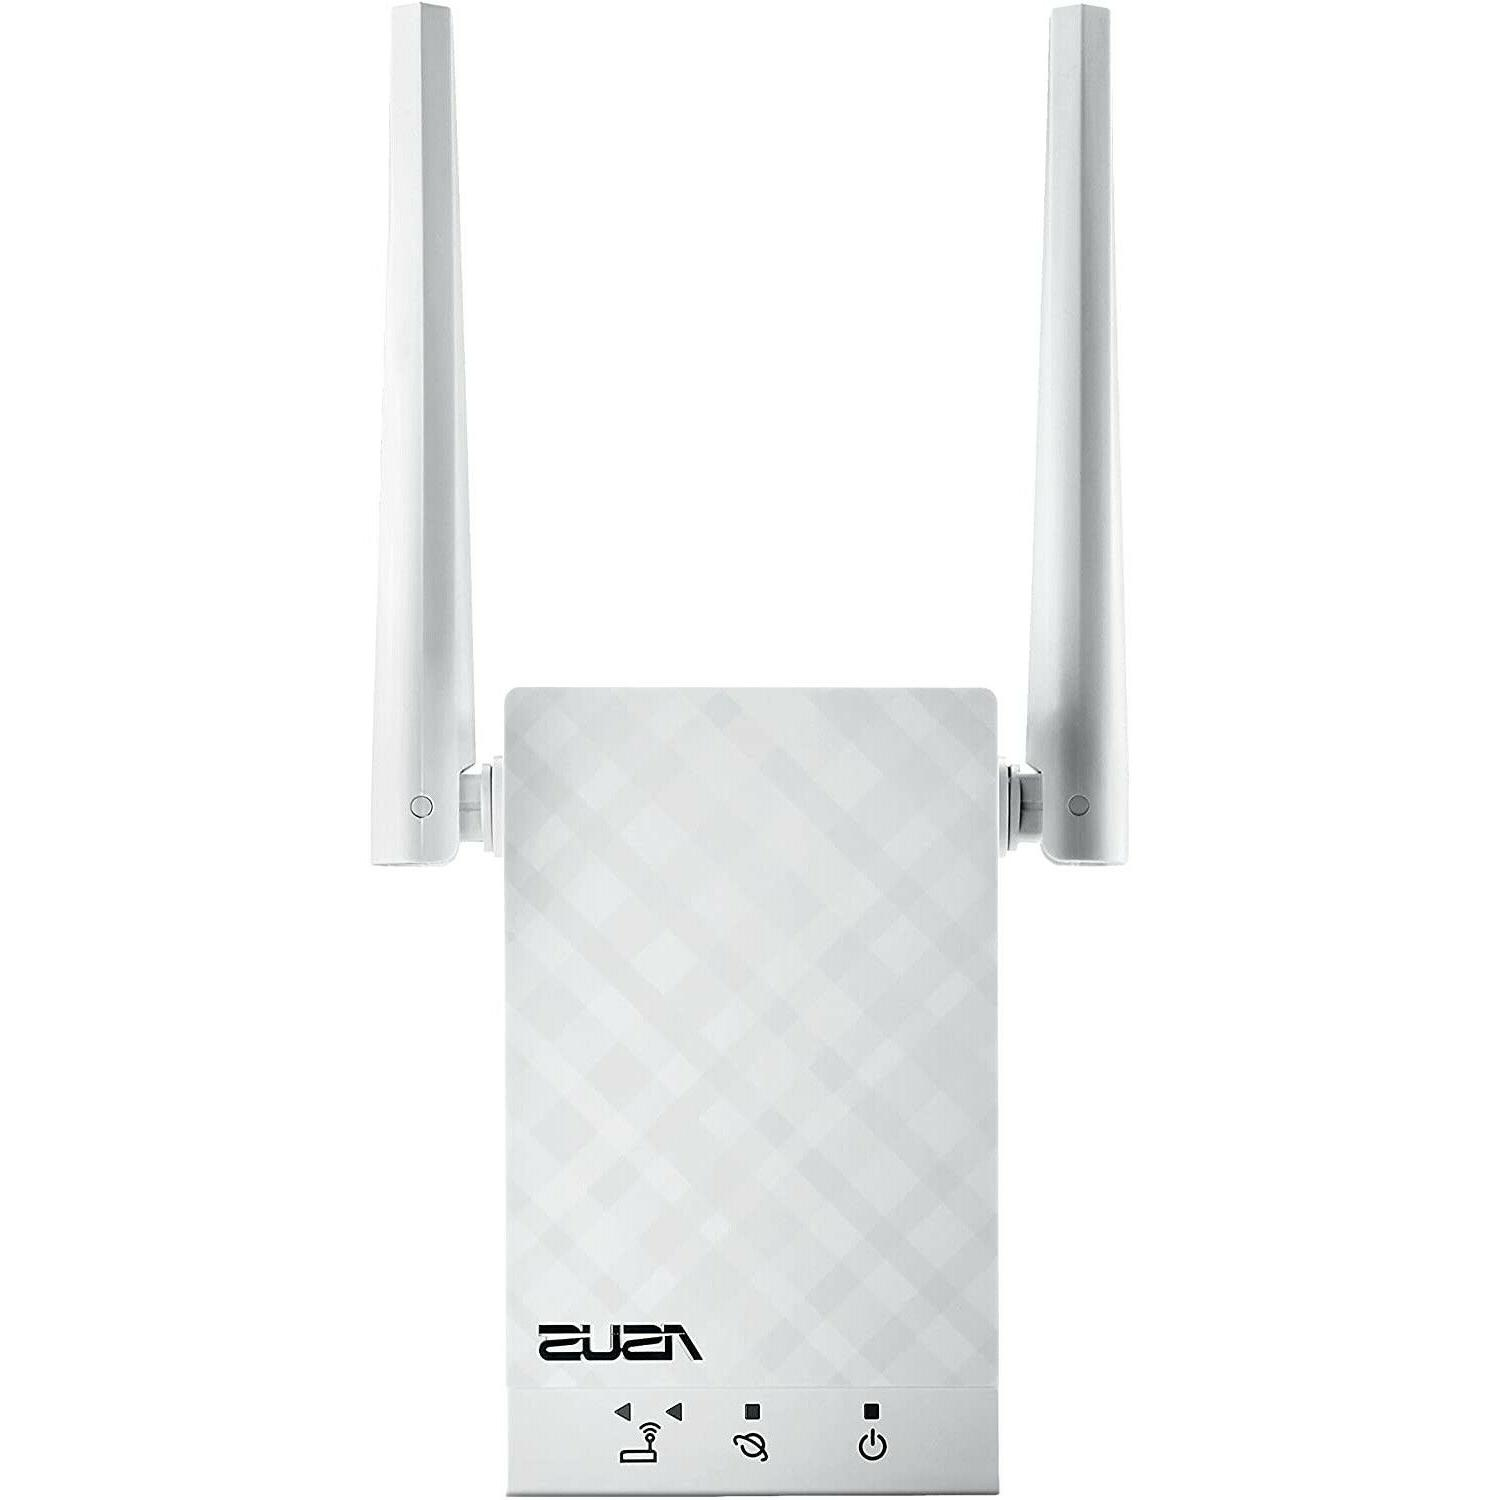 Asus WiFi Range Extender Dual-Band Wireless Network Signal B